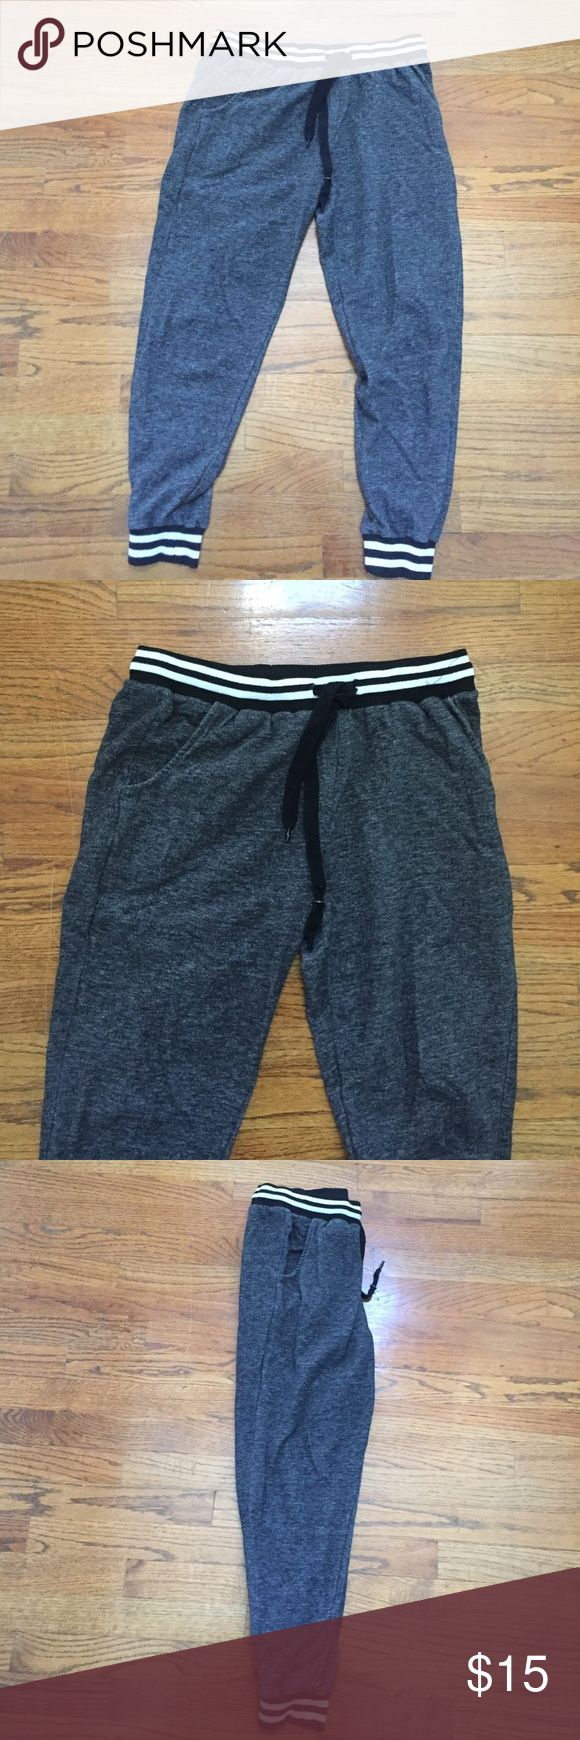 grey joggers grey joggers with black and white striped waist band Rue 21 Pants Track Pants & Joggers